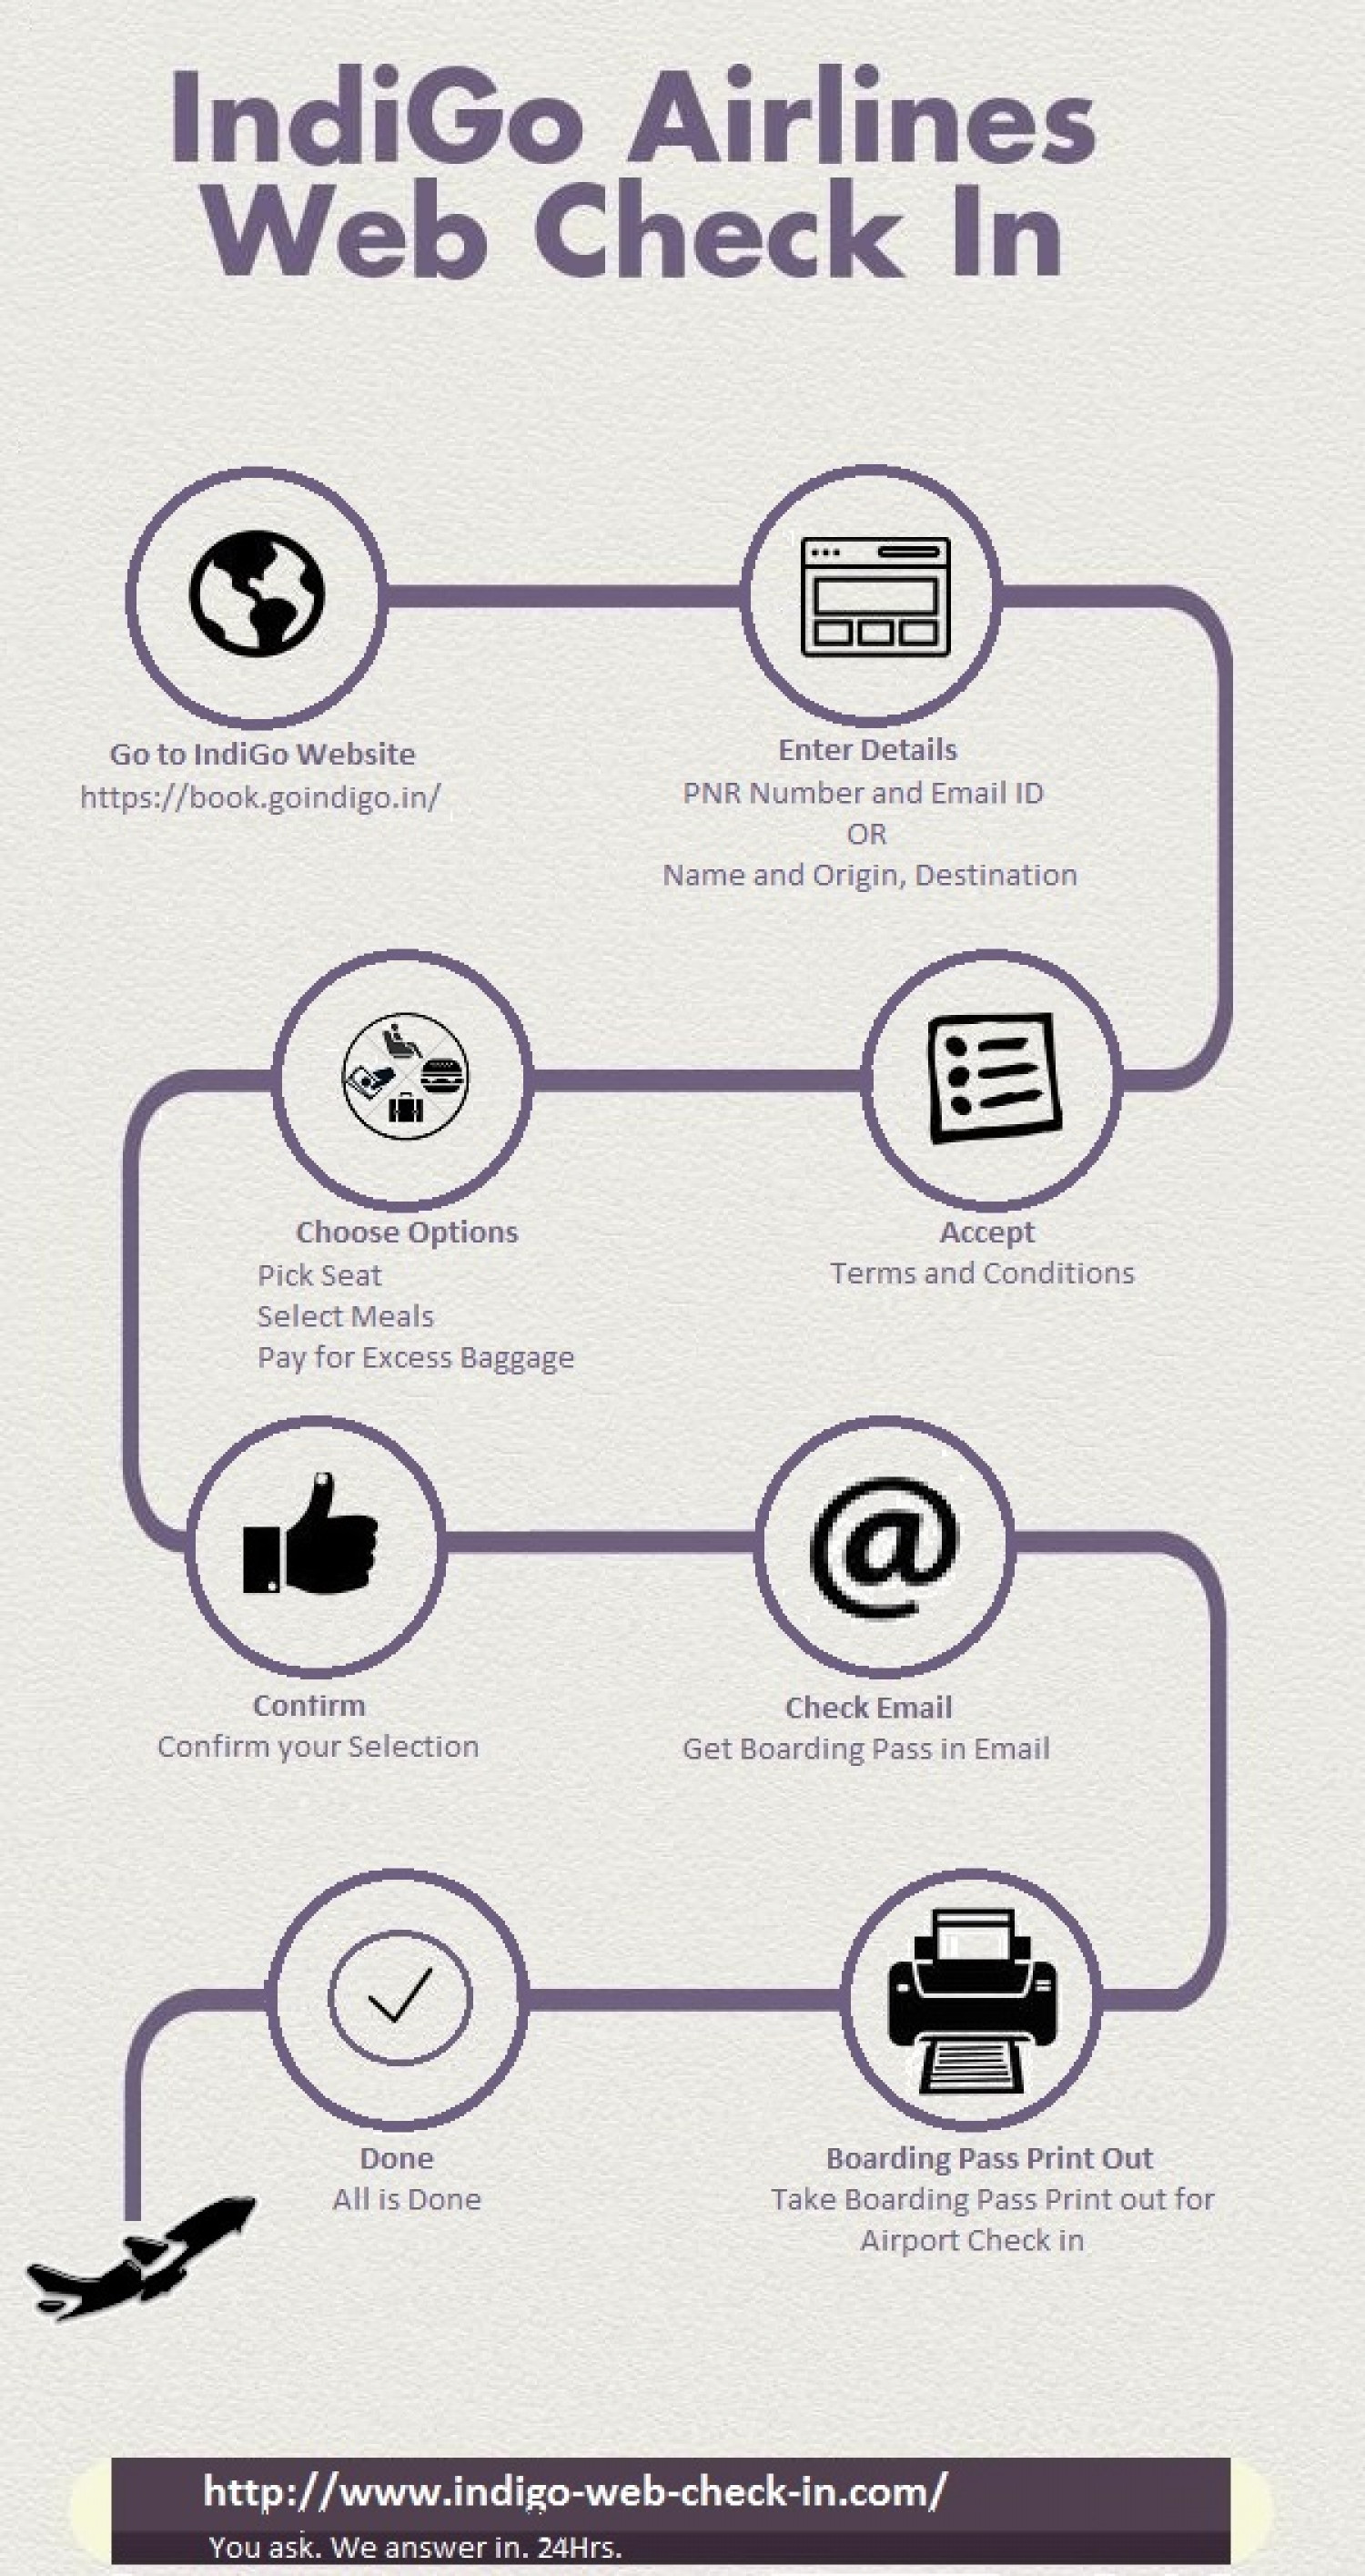 Visual Representation of Indigo Web Check in Process Online Infographic